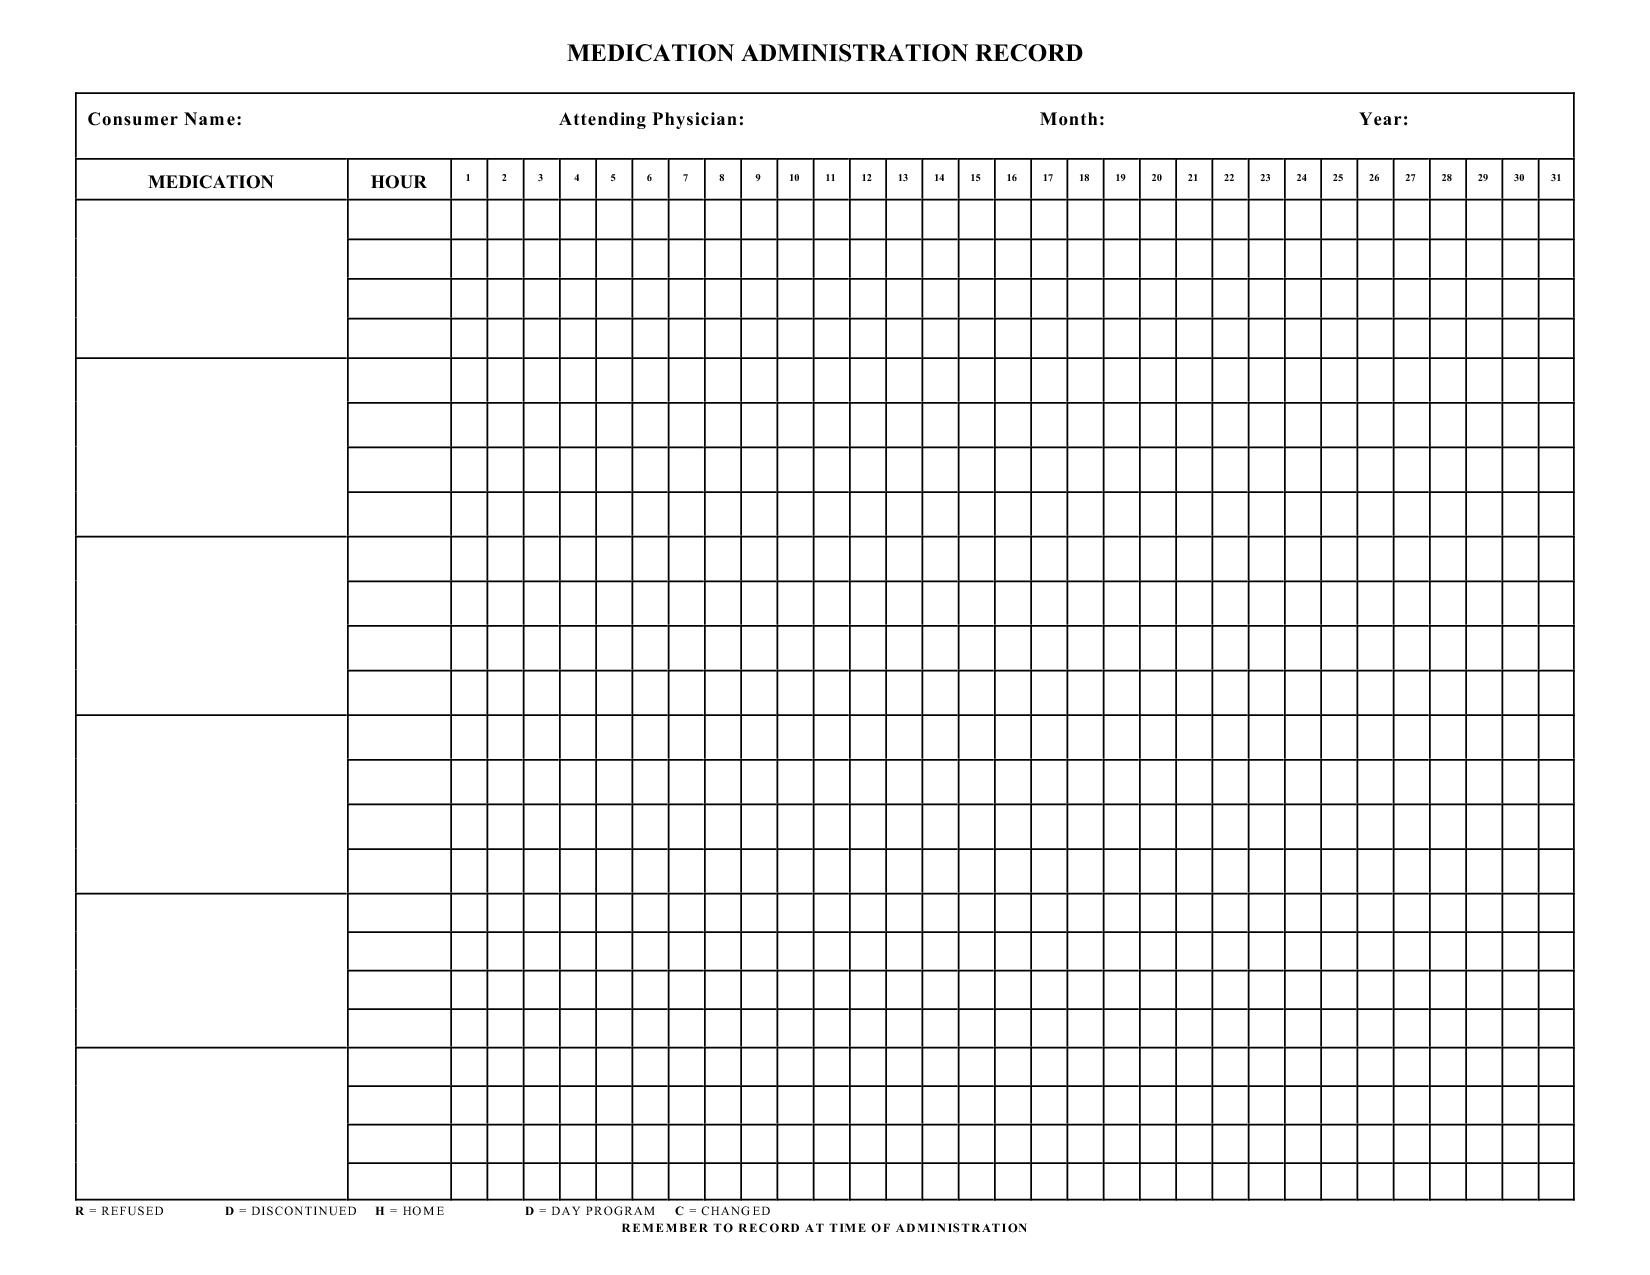 Blank+Medication+Administration+Record+Template | Mrs. Summers - Free Printable Medication Log